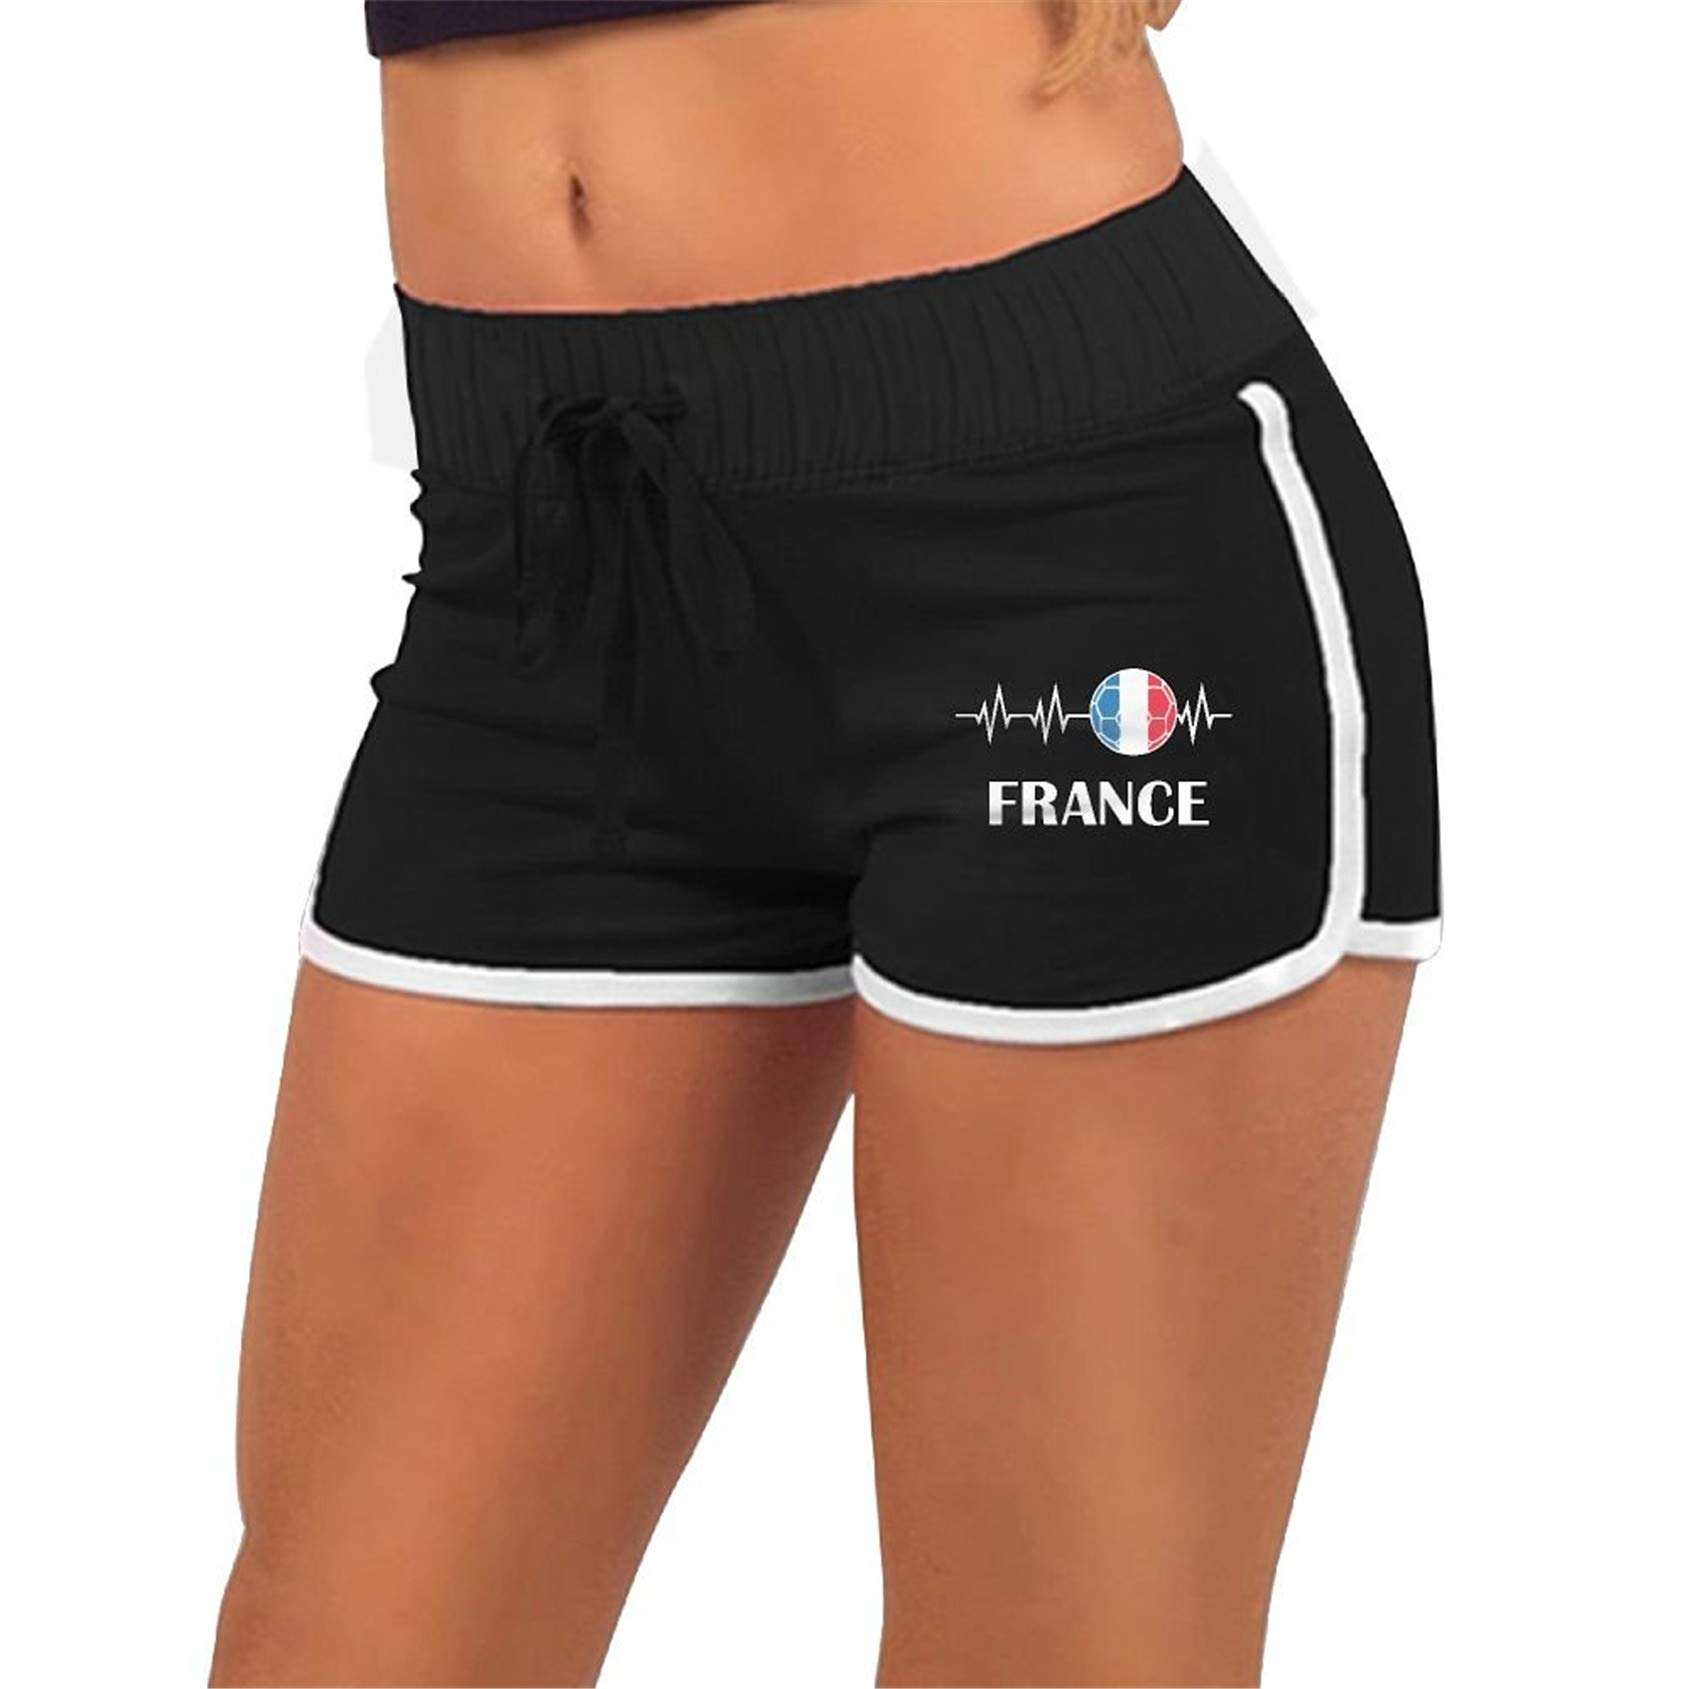 Soccer Heartbeat I Love France,Running,Yoga Short Pants with,Athletic Elastic Waist Womens Sports Shorts by Tuoneng (Image #1)